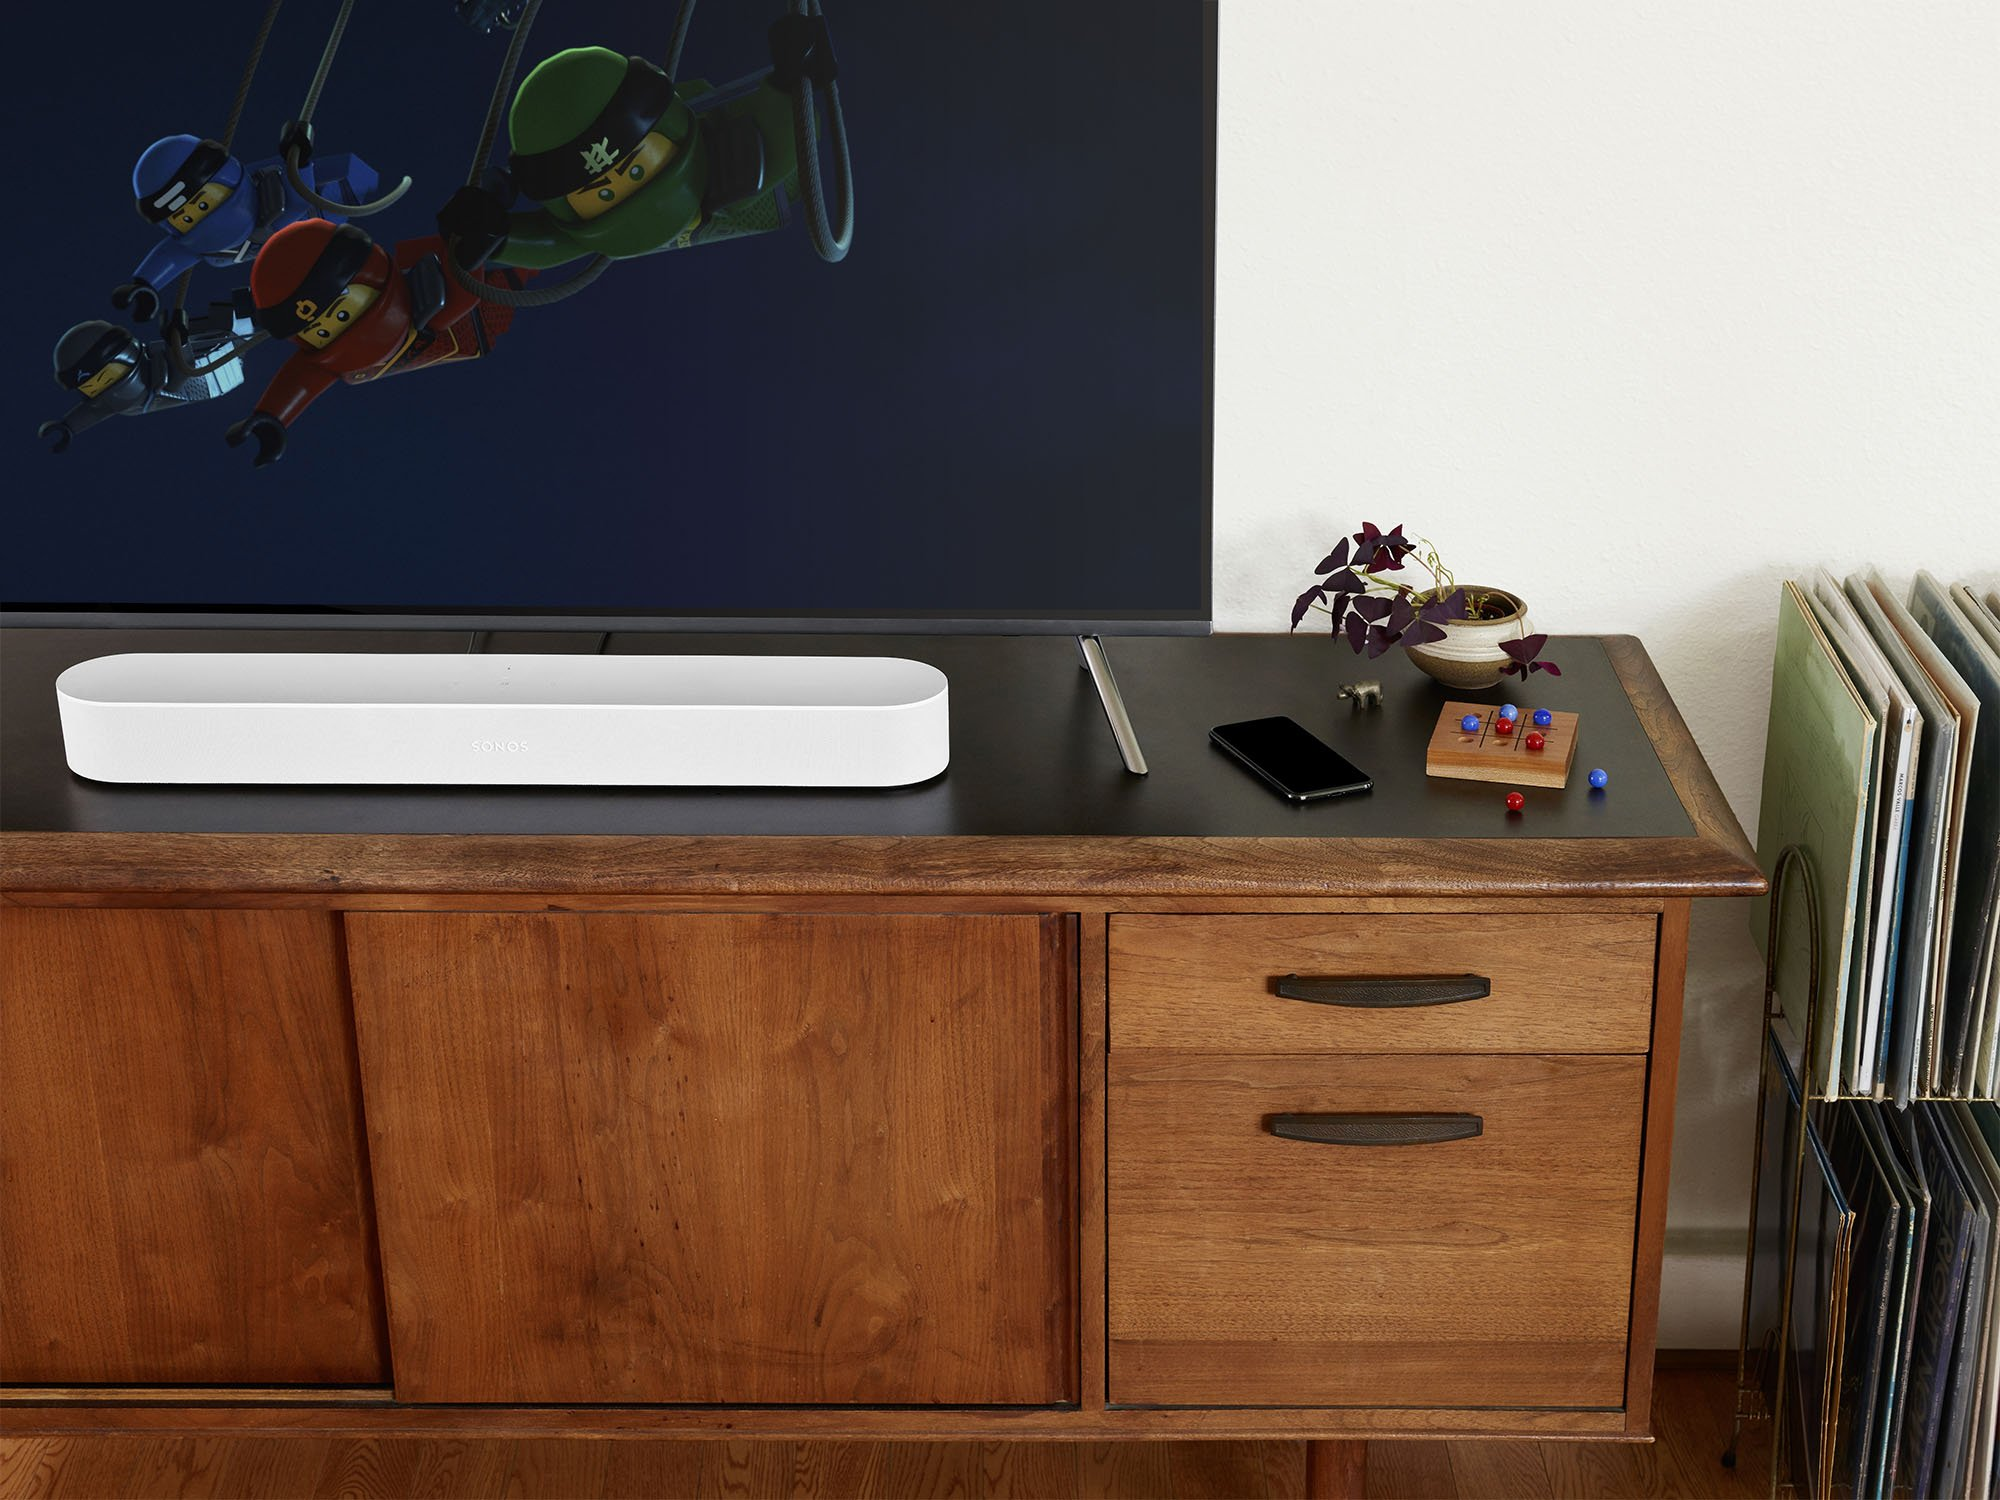 Sonos introduces 'Beam' sound bar with AirPlay 2, Siri and Alexa control